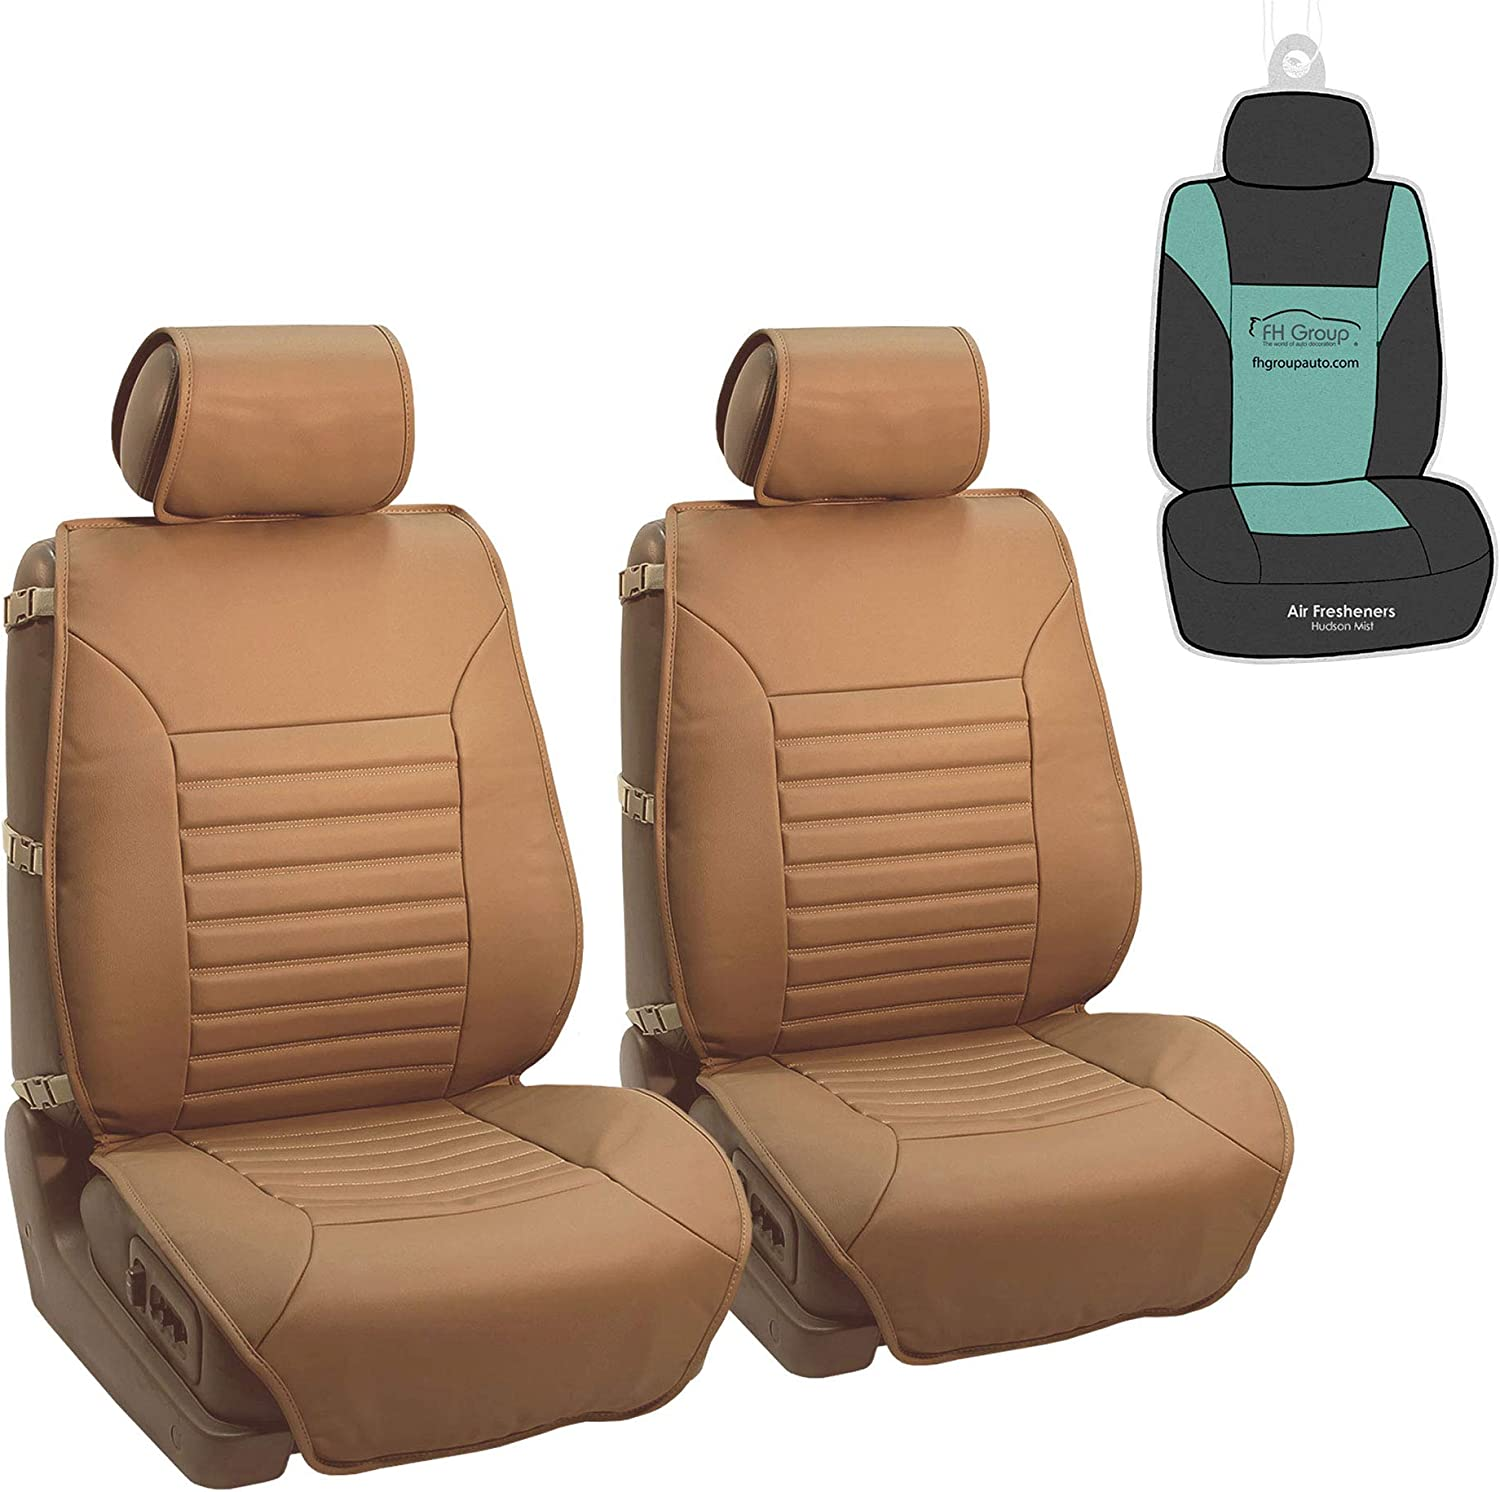 FH Group PU206102 Multifunctional Quilted Leather Seat Cushions Pair Set, Tan Color w. Gift- Fit Most Car, Truck, SUV, or Van